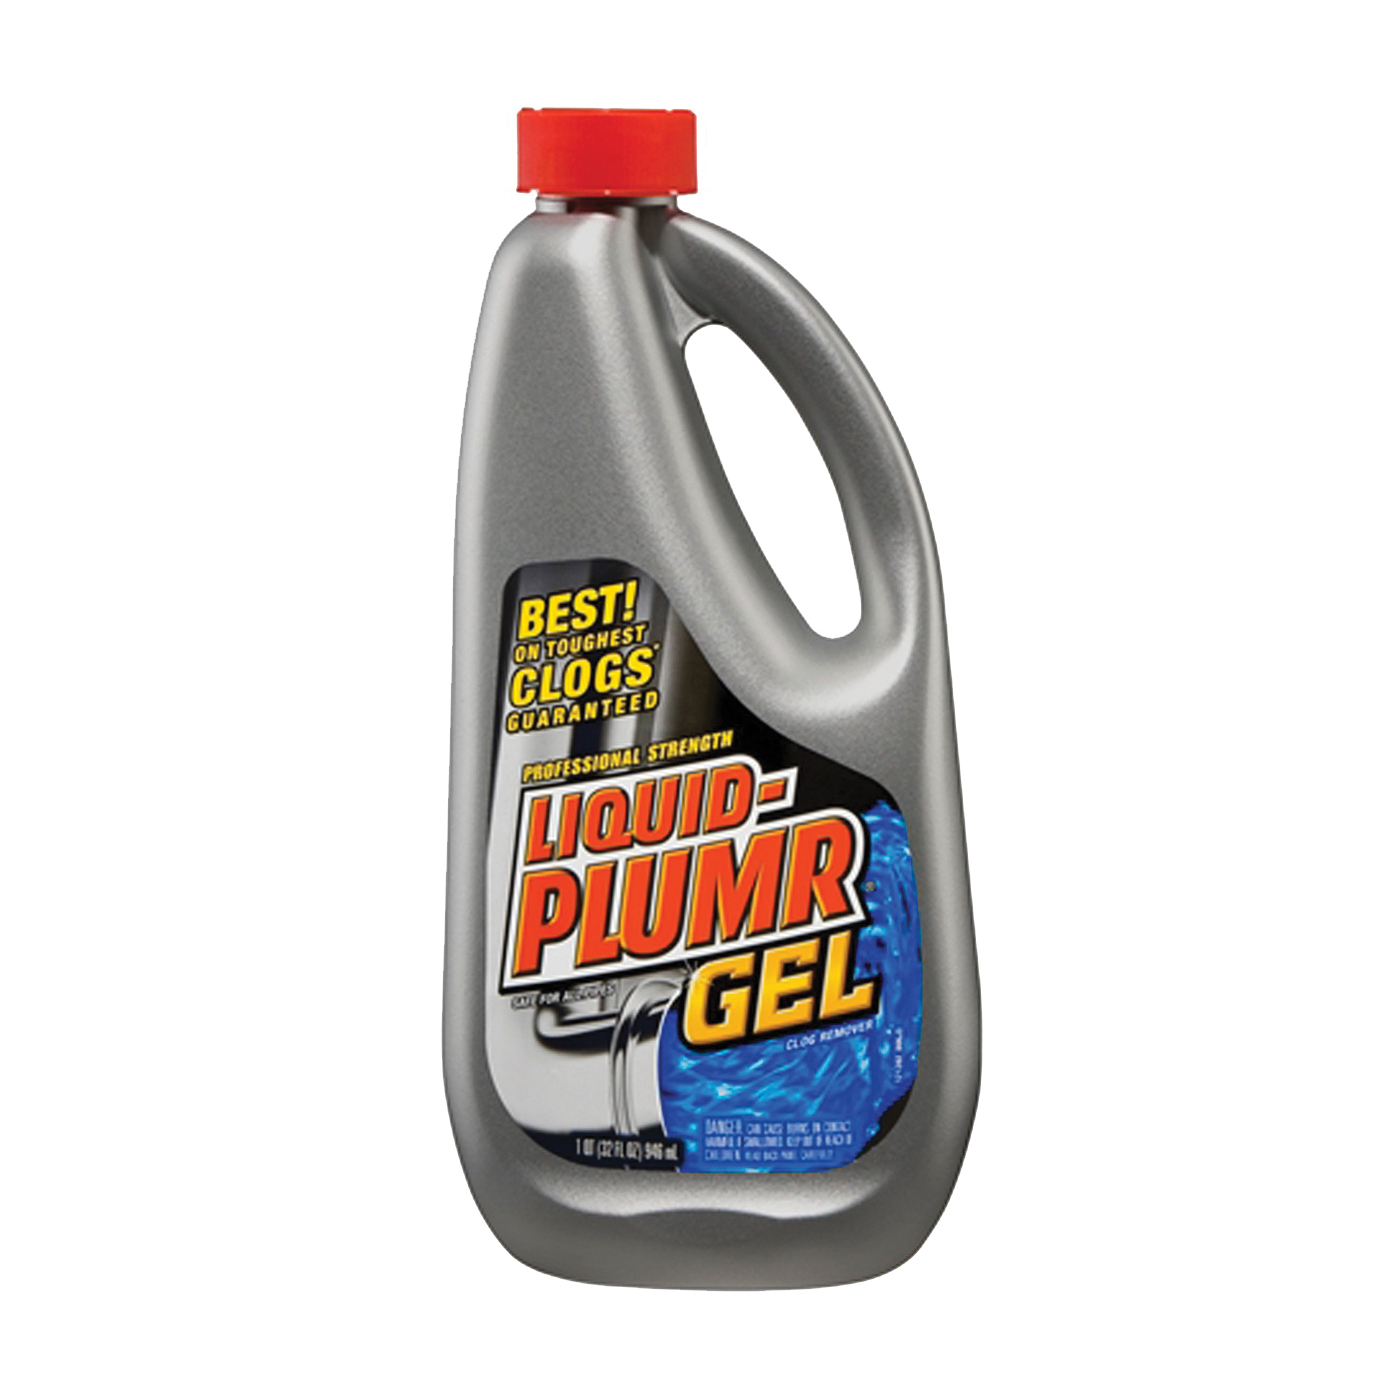 Picture of Liquid-Plumr 00243 Clog Remover, Liquid, Pale Yellow, Bleach, 32 oz Package, Bottle